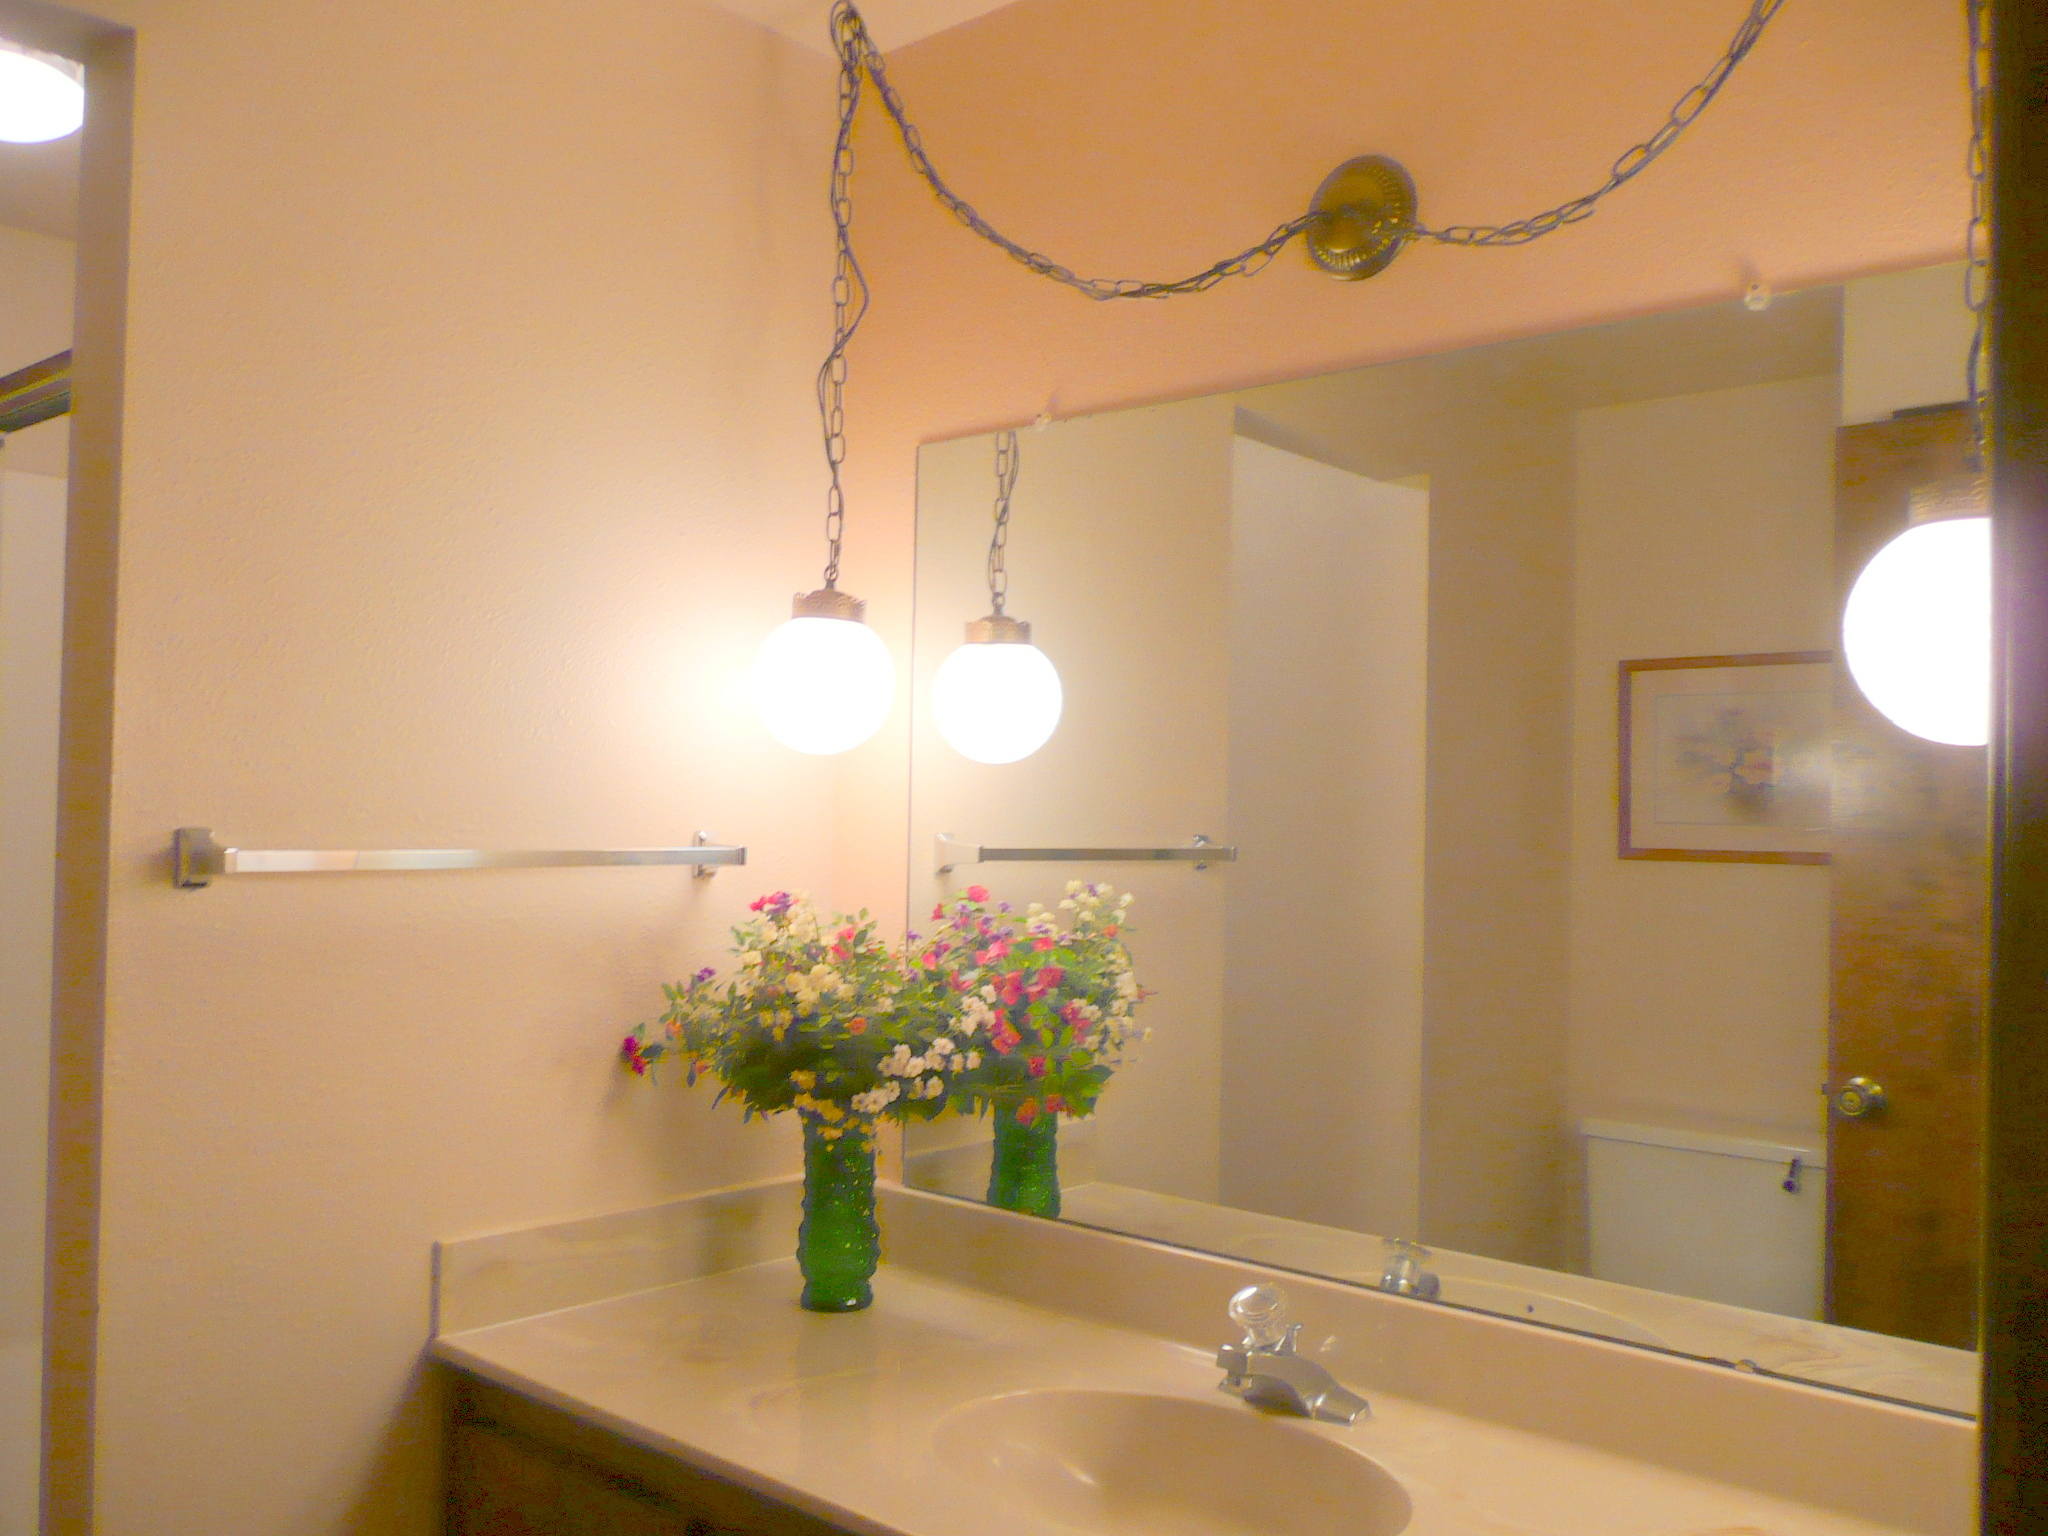 Updating Bathroom Vanity Lighting  Tips for Home Sellers  Home